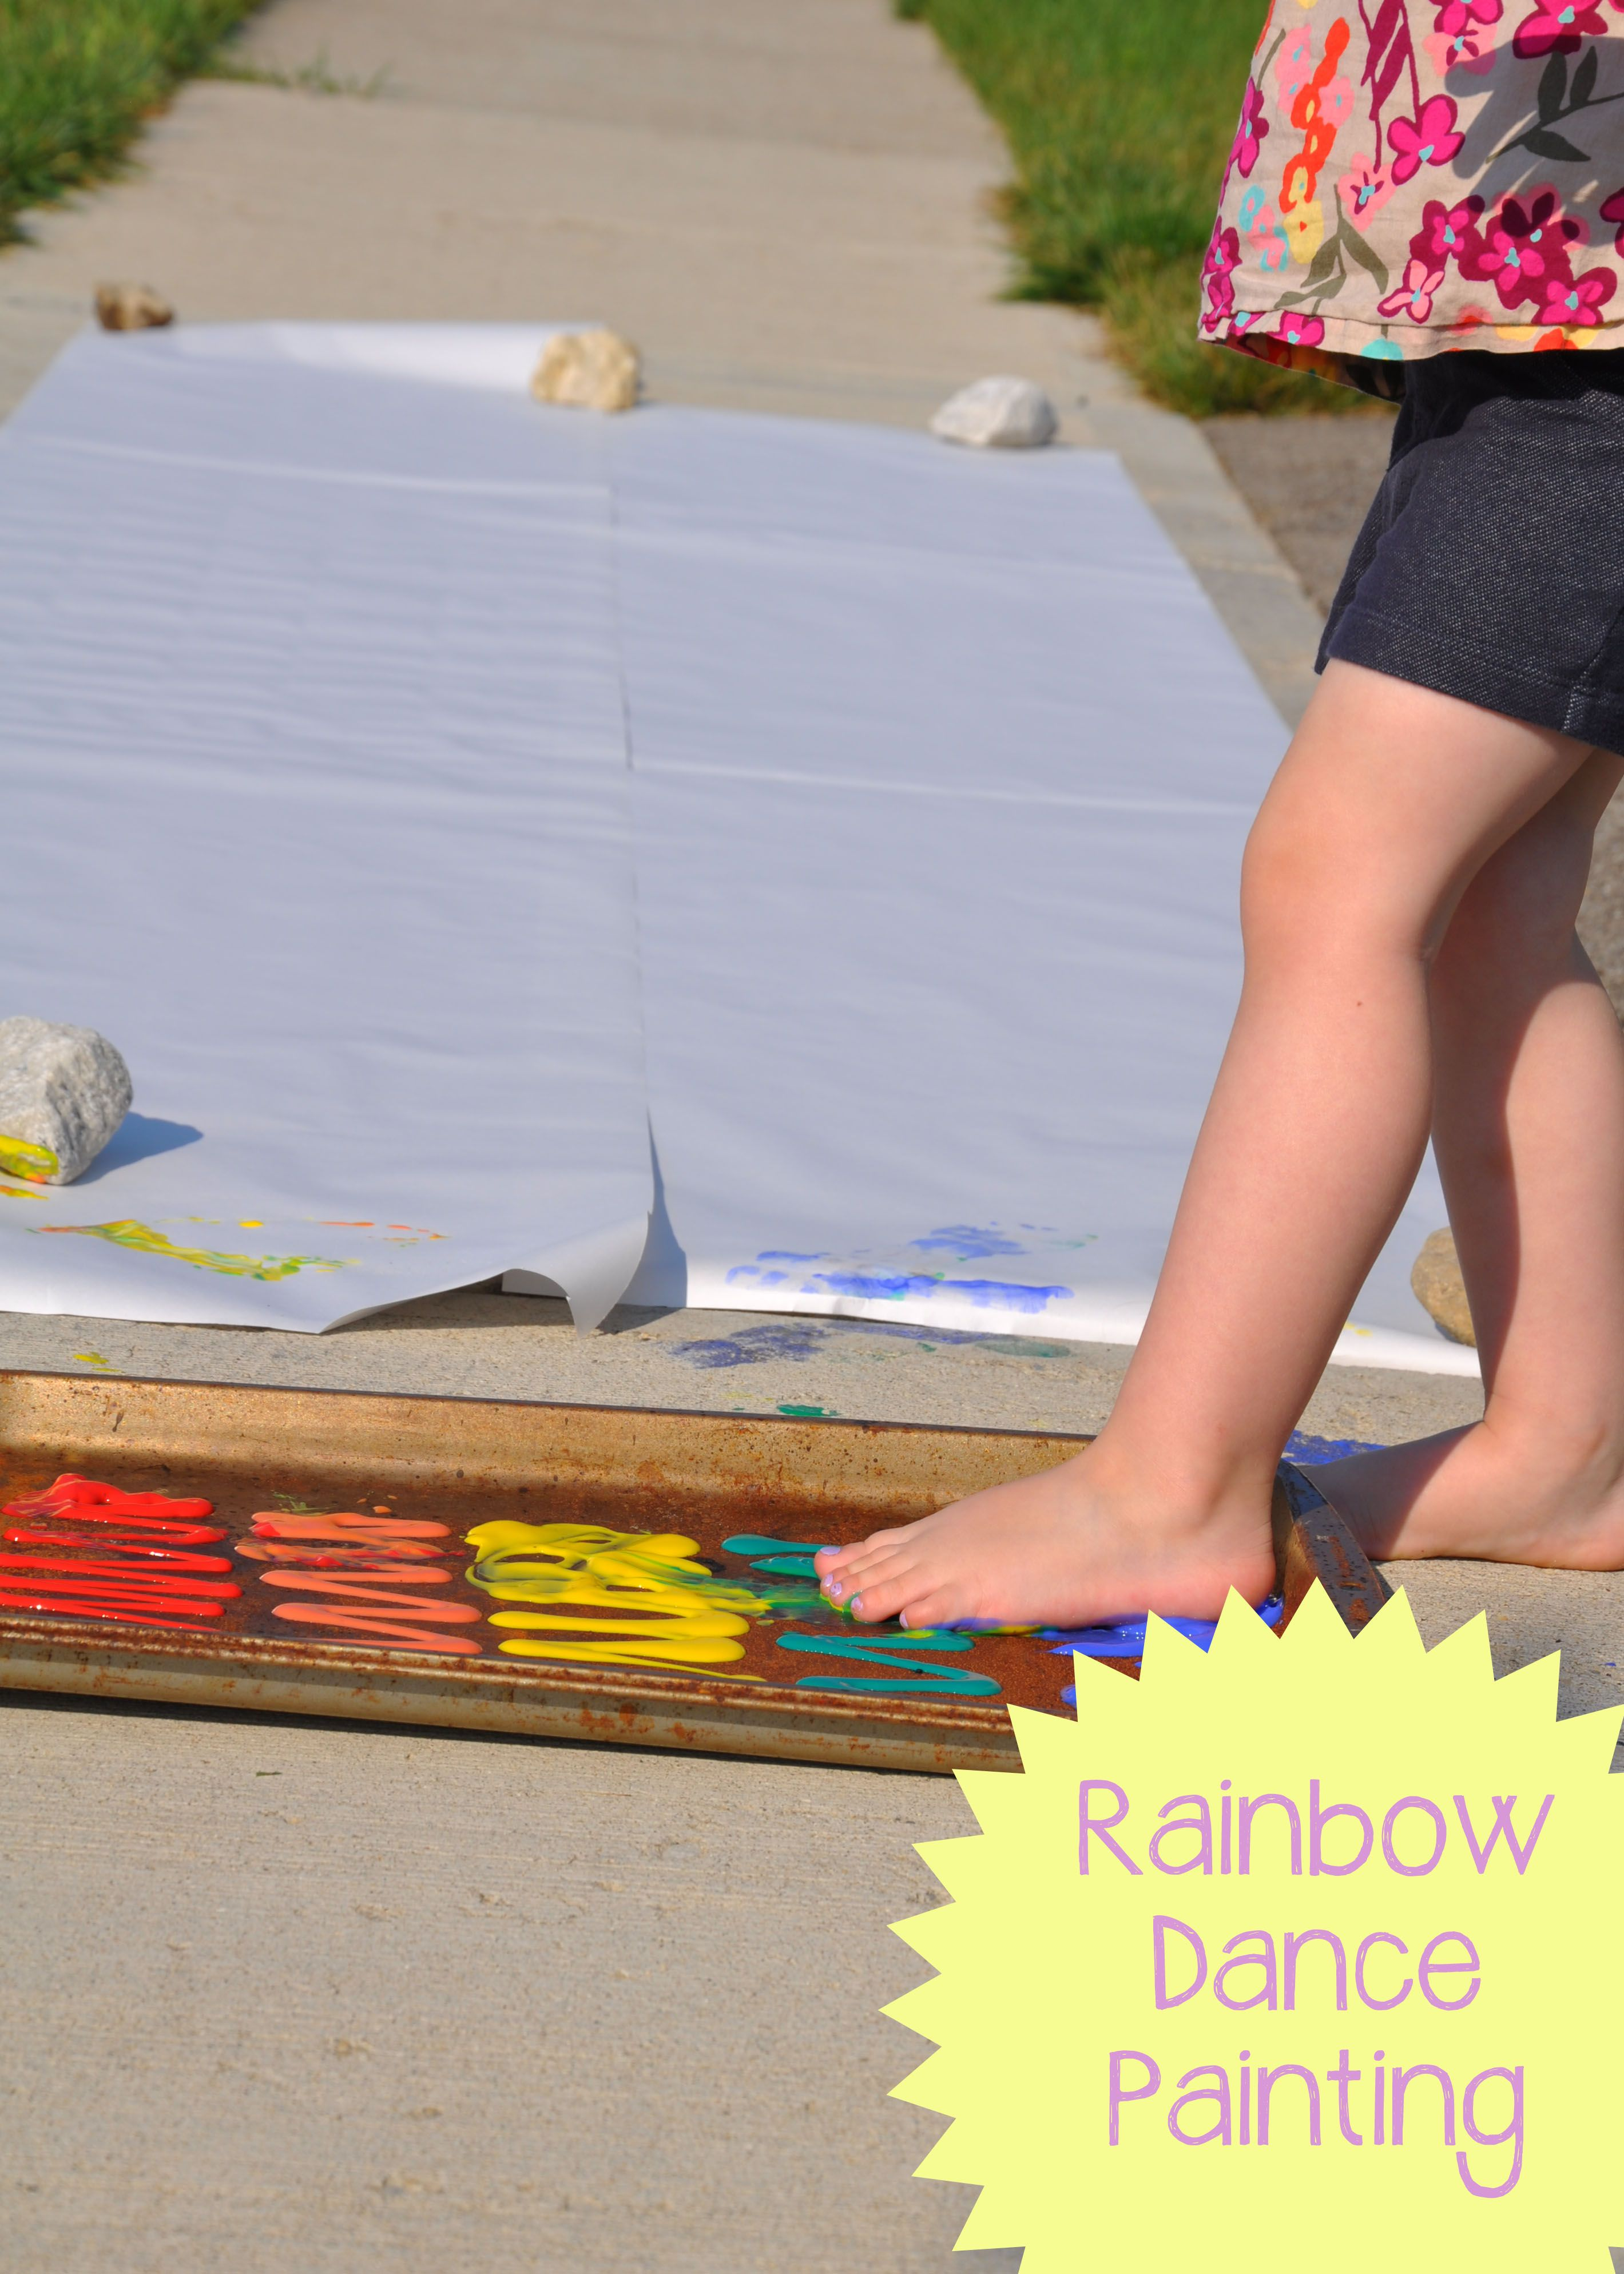 Rainbow Dance Painting - Messy Monday @ play learn love.